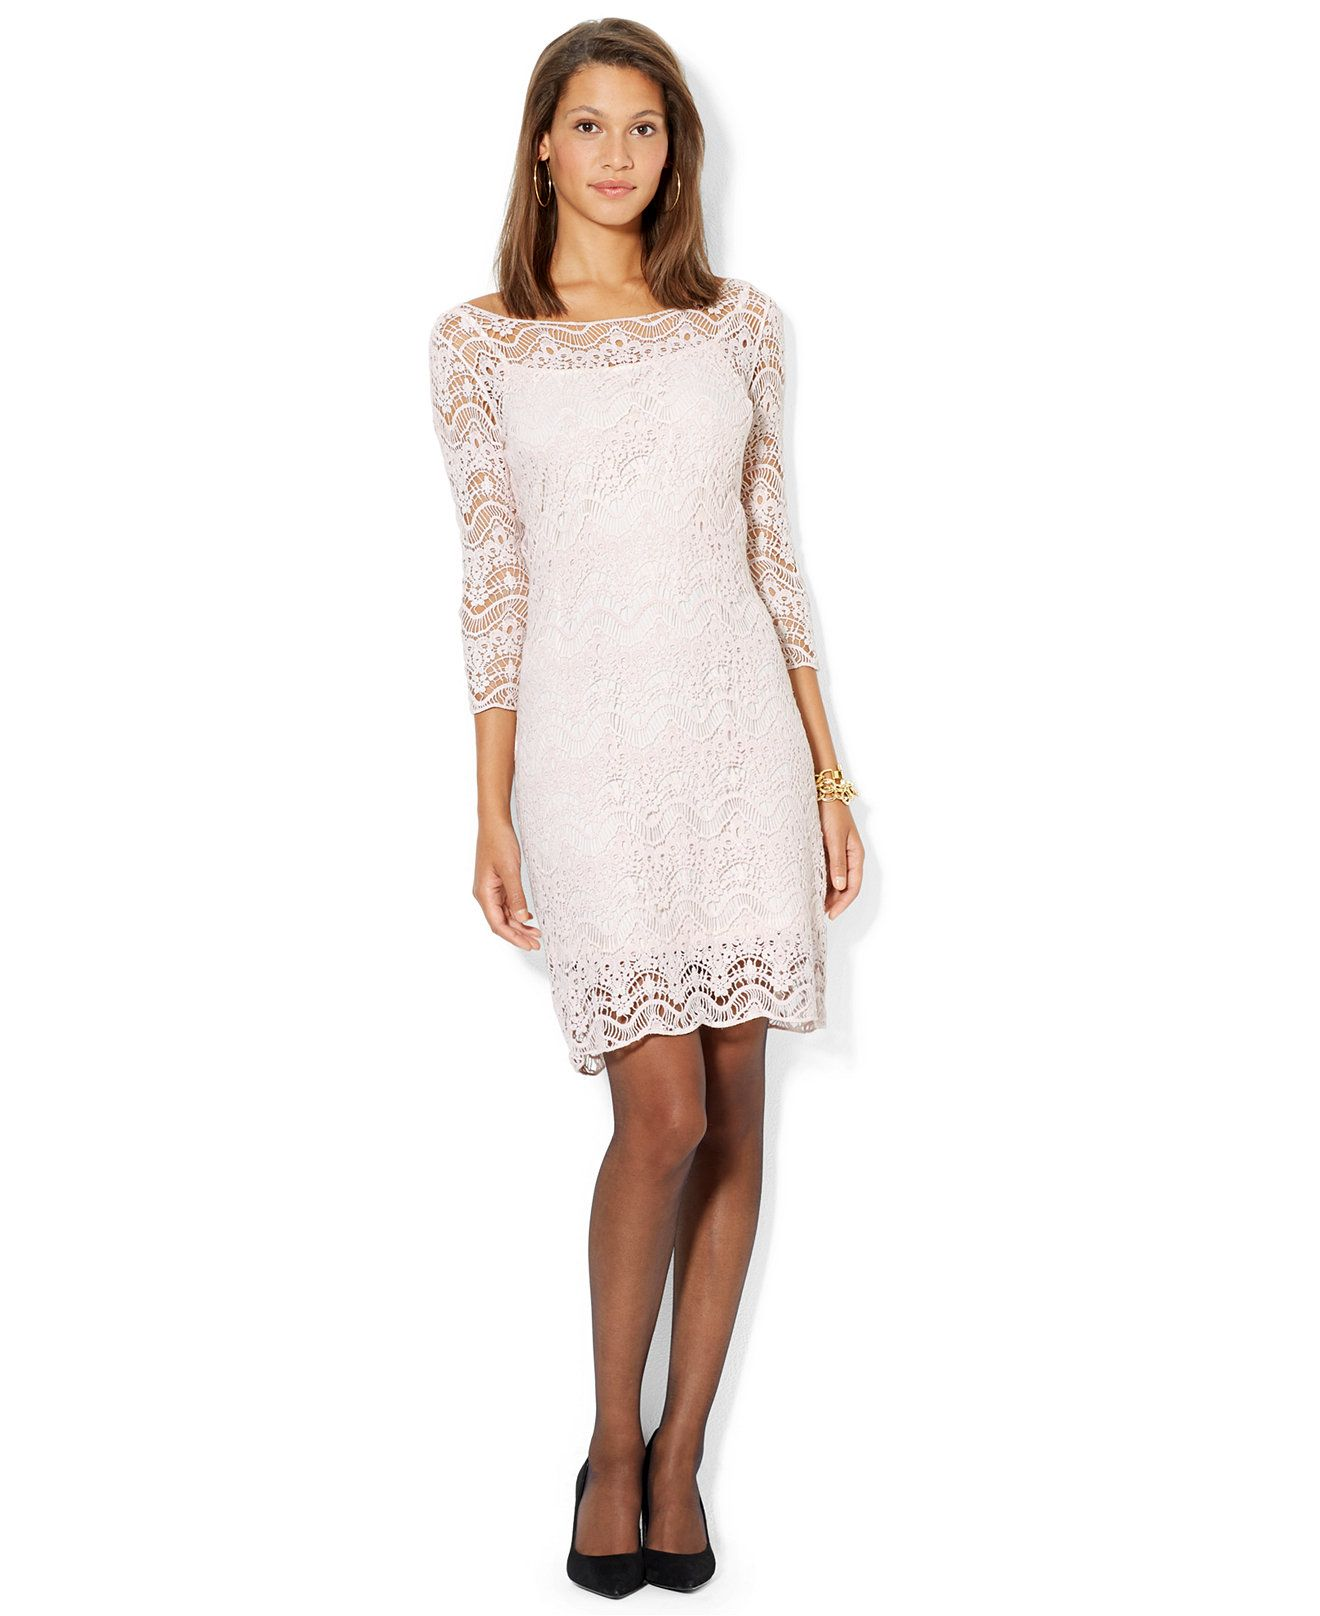 e384f7ecfd1 Lauren Ralph Lauren Three-Quarter-Sleeve Boat-Neck Lace Dress - Dresses -  Women - Macy s